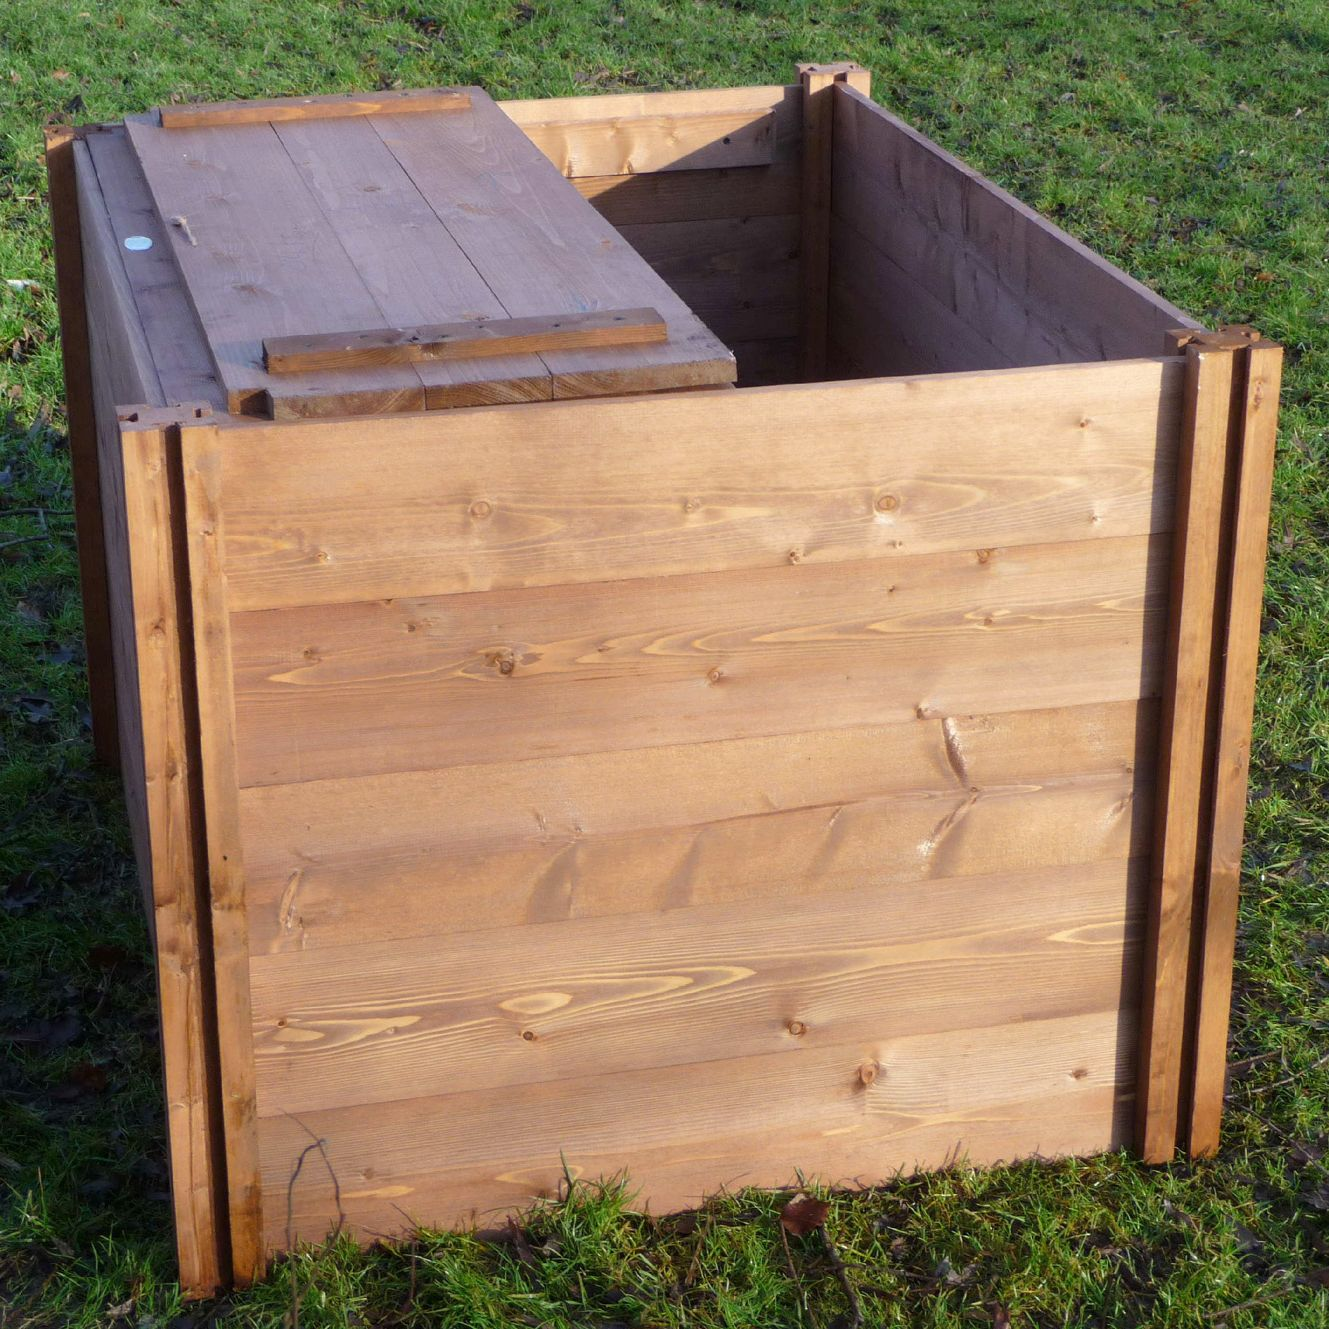 The Big Square Wooden Modular Compost Bin